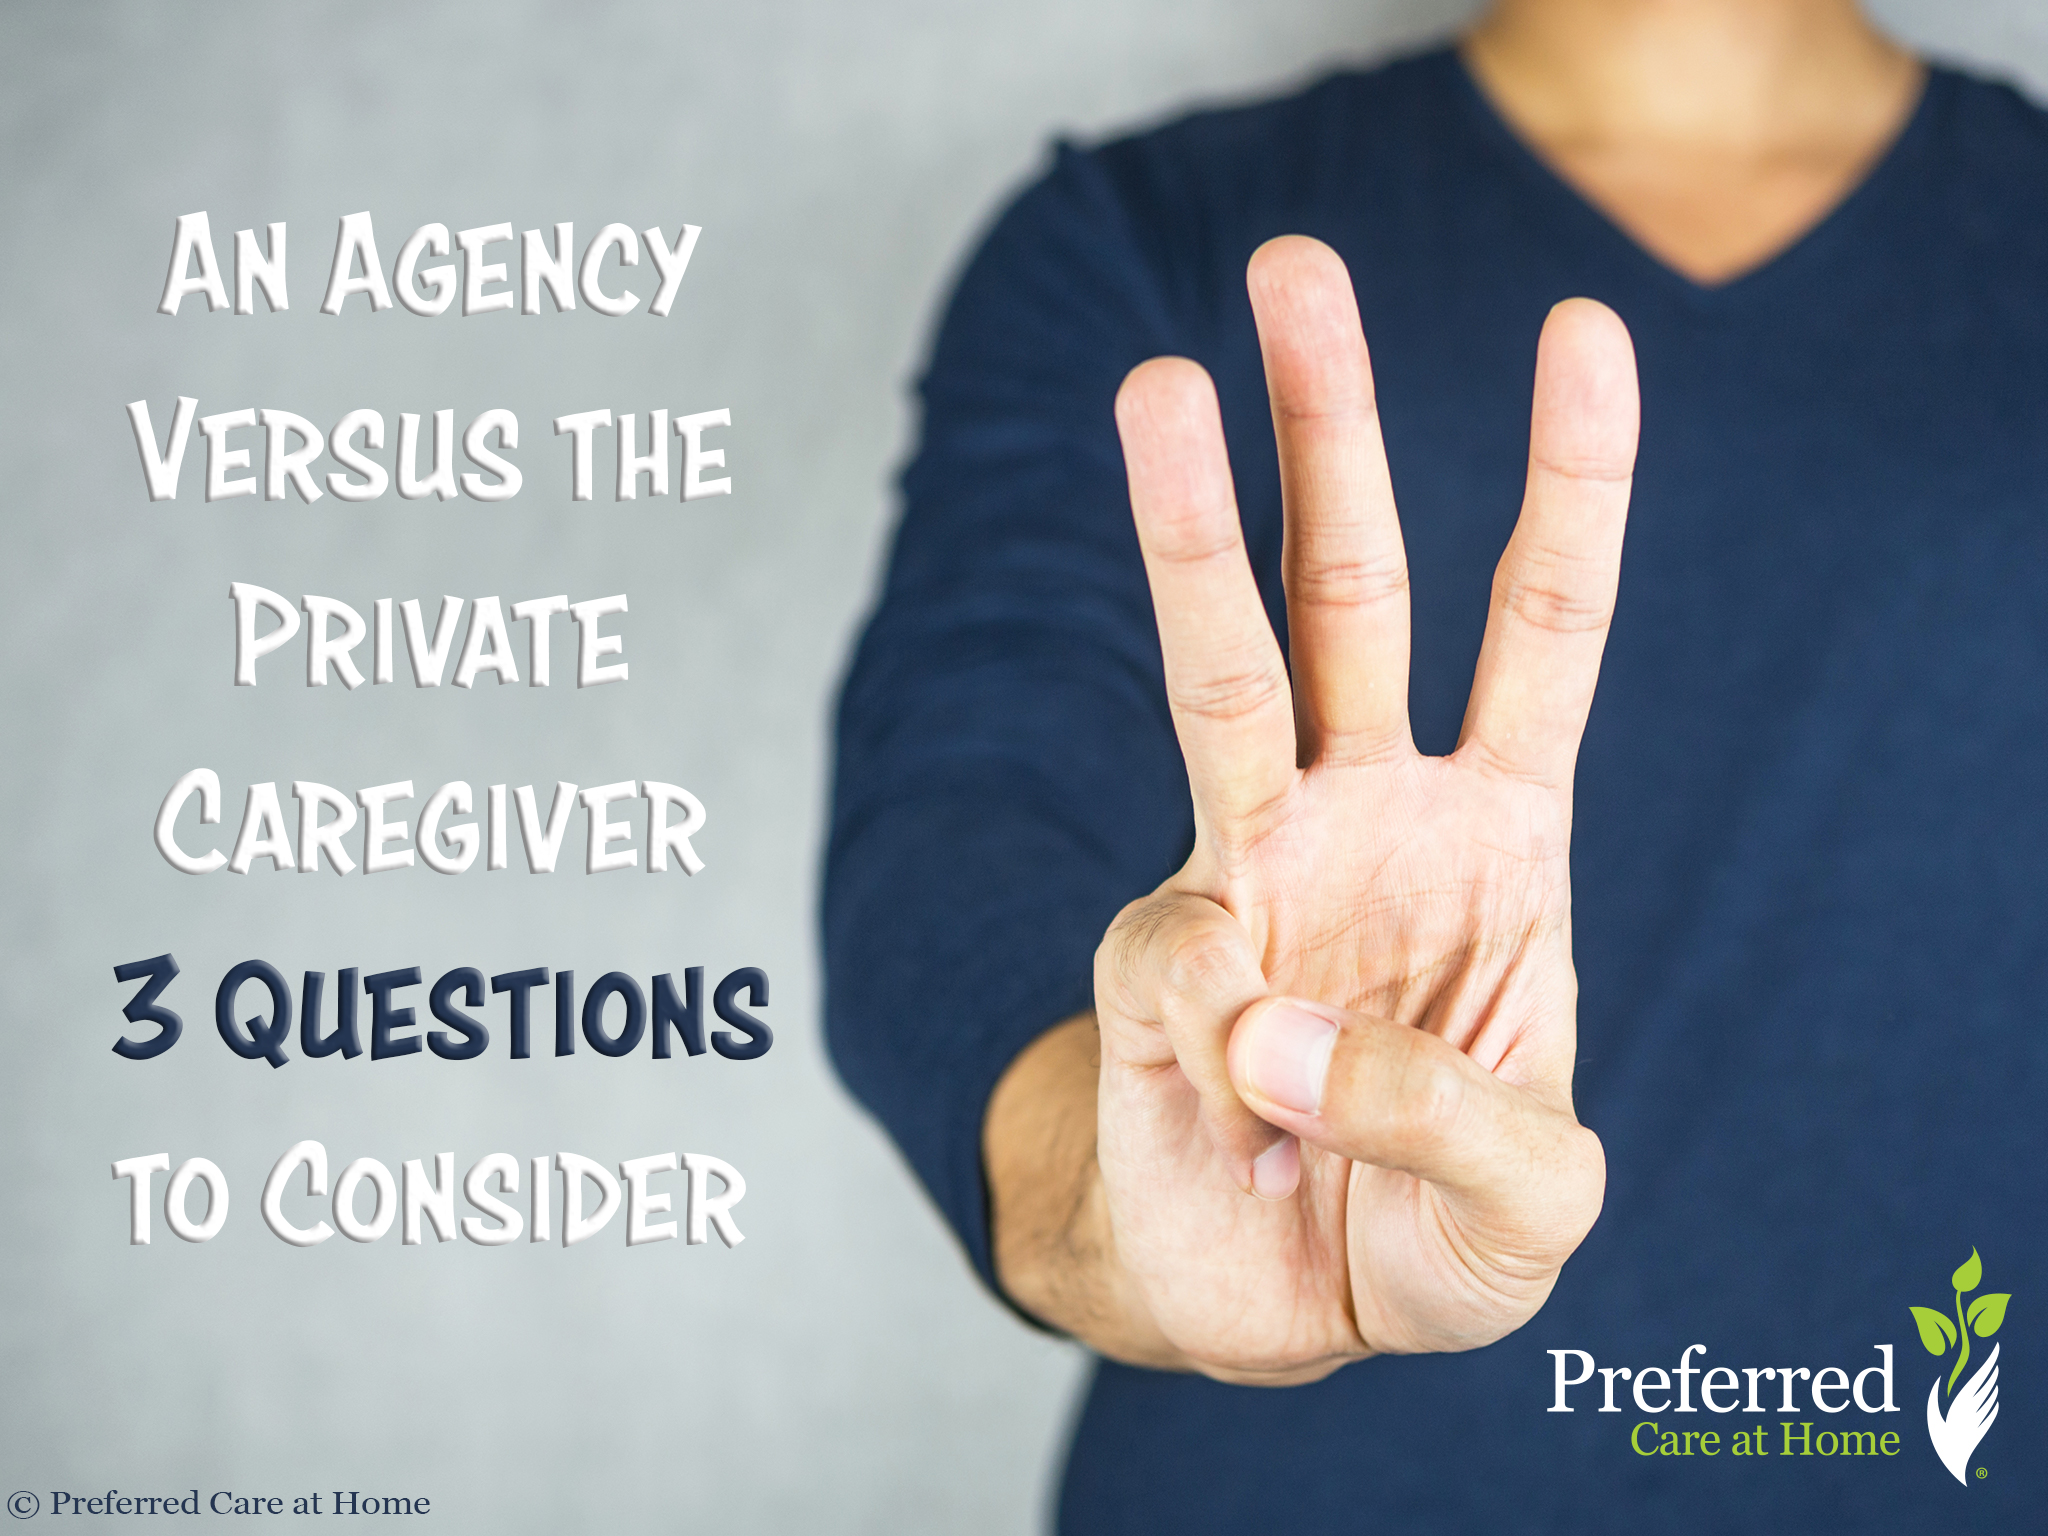 An Agency Versus the Private Caregiver: 3 Questions to Consider